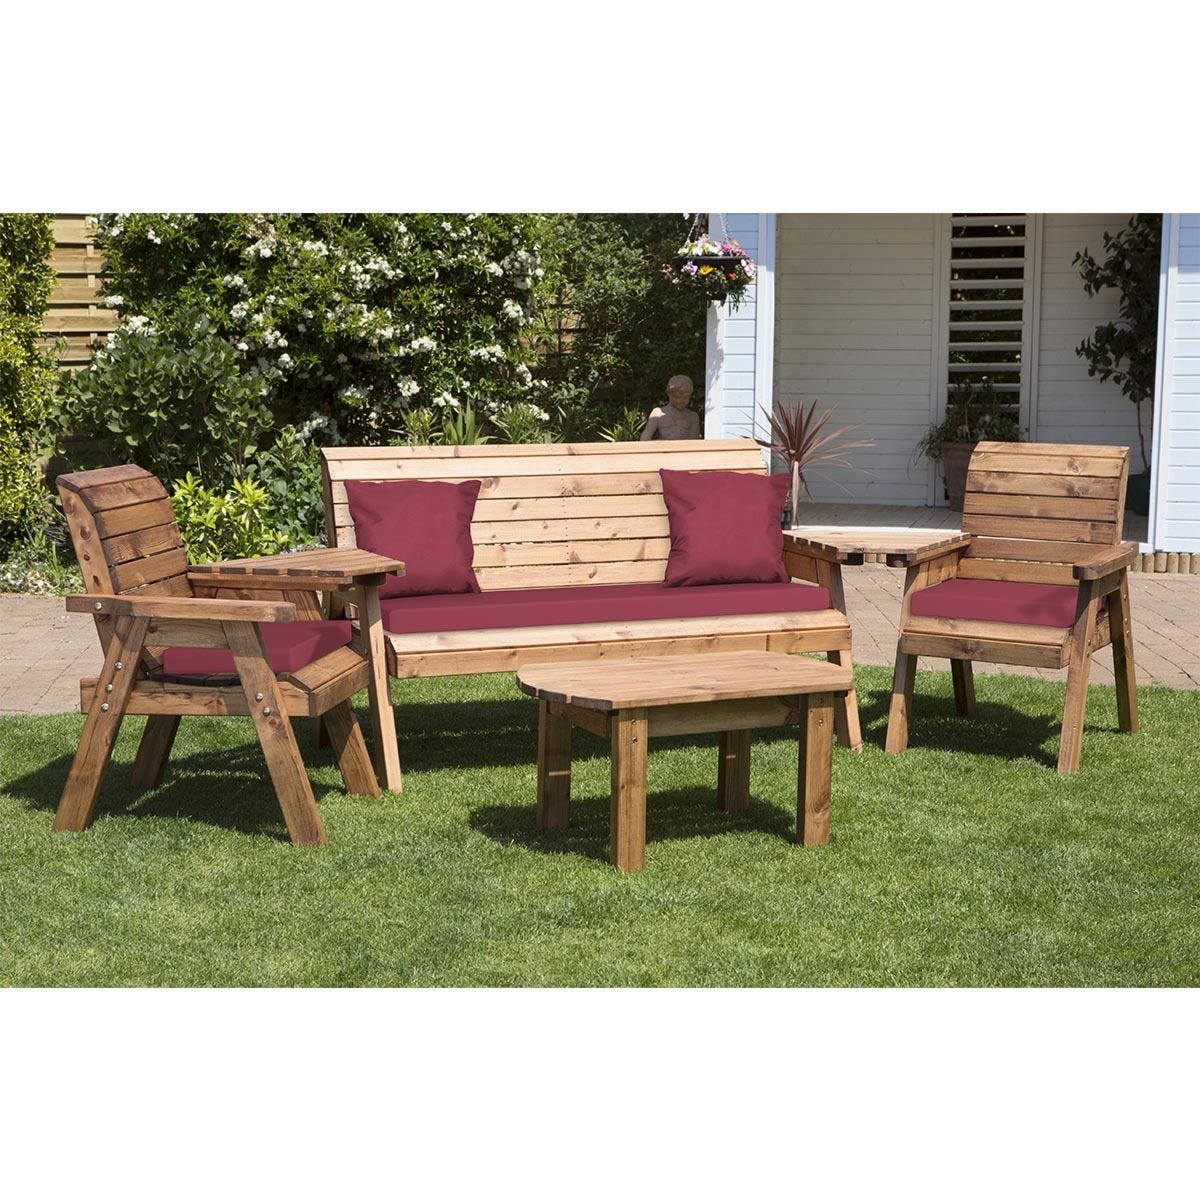 Charles Taylor Five Seater Multi Set with Burgundy Cushions